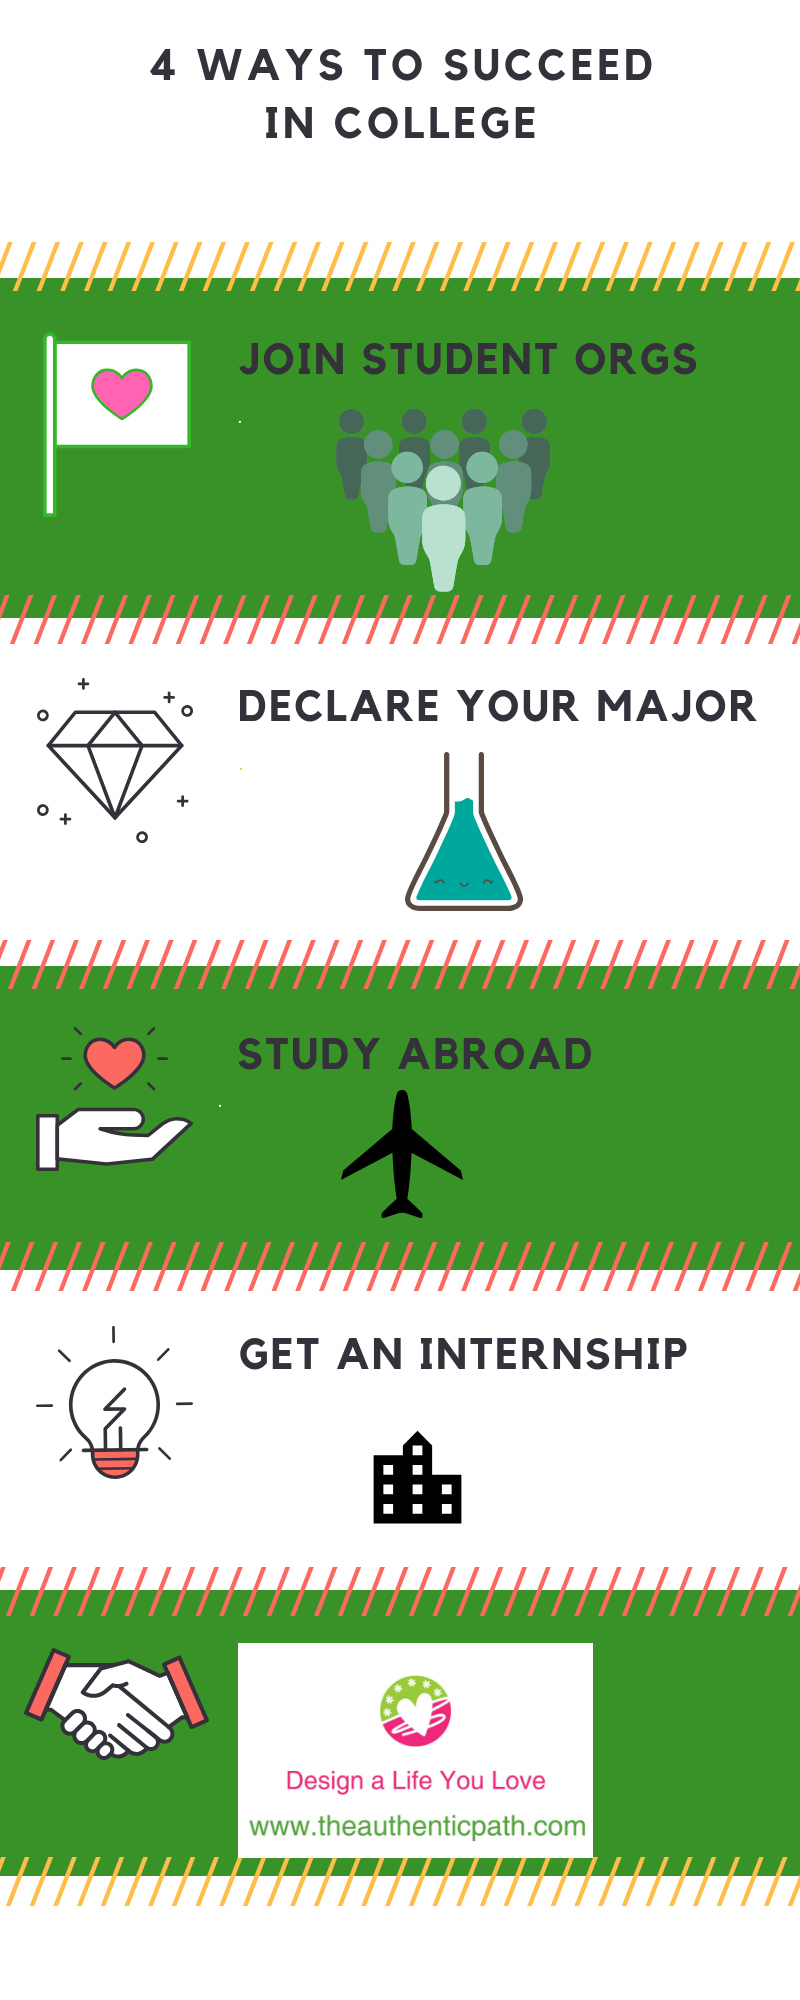 4 Ways to Succeed in College.png